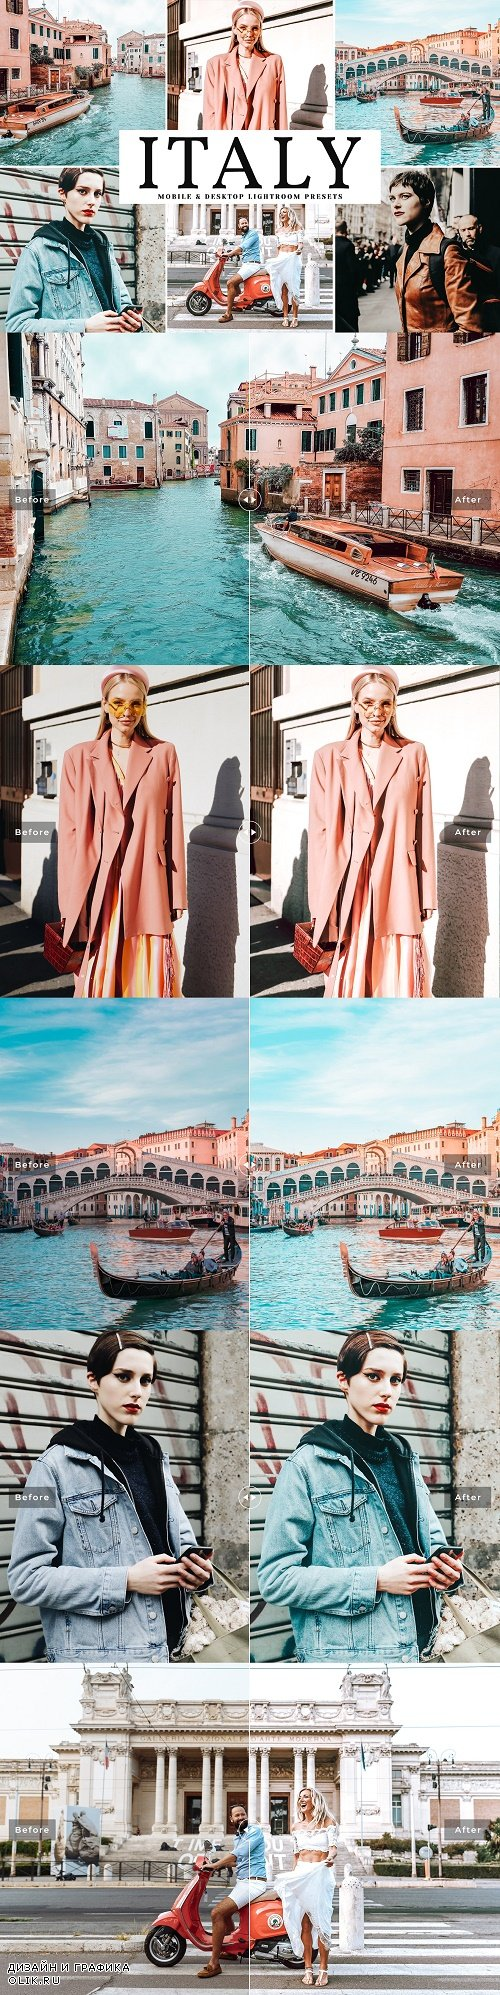 Italy LRM Presets Pack - 3884432